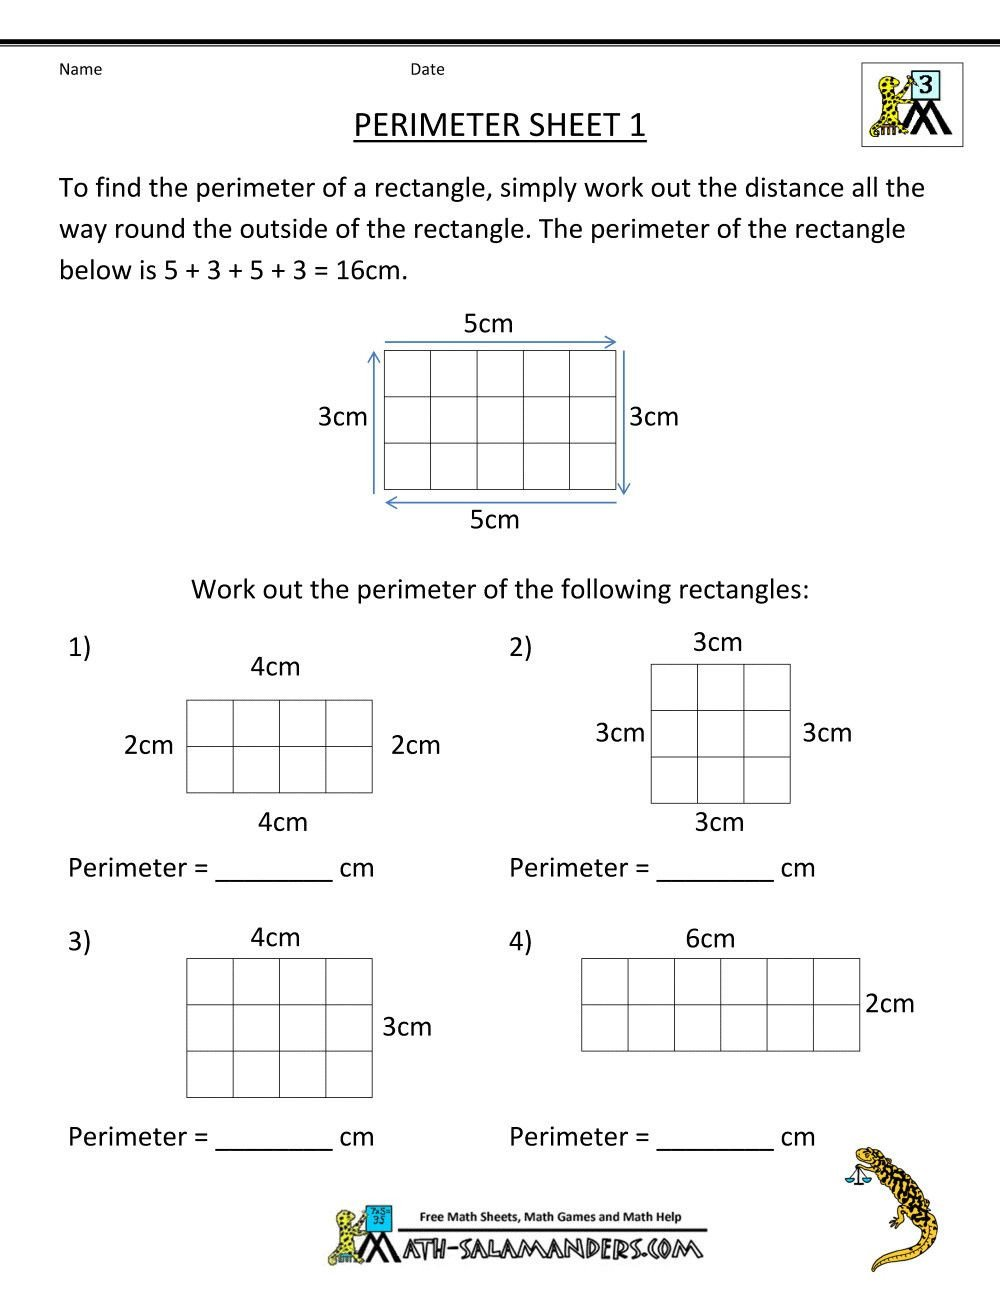 Worksheet Works Calculating Volume 2 Capacity Worksheets Grade 2 Free 3rd Grade Math Worksheets